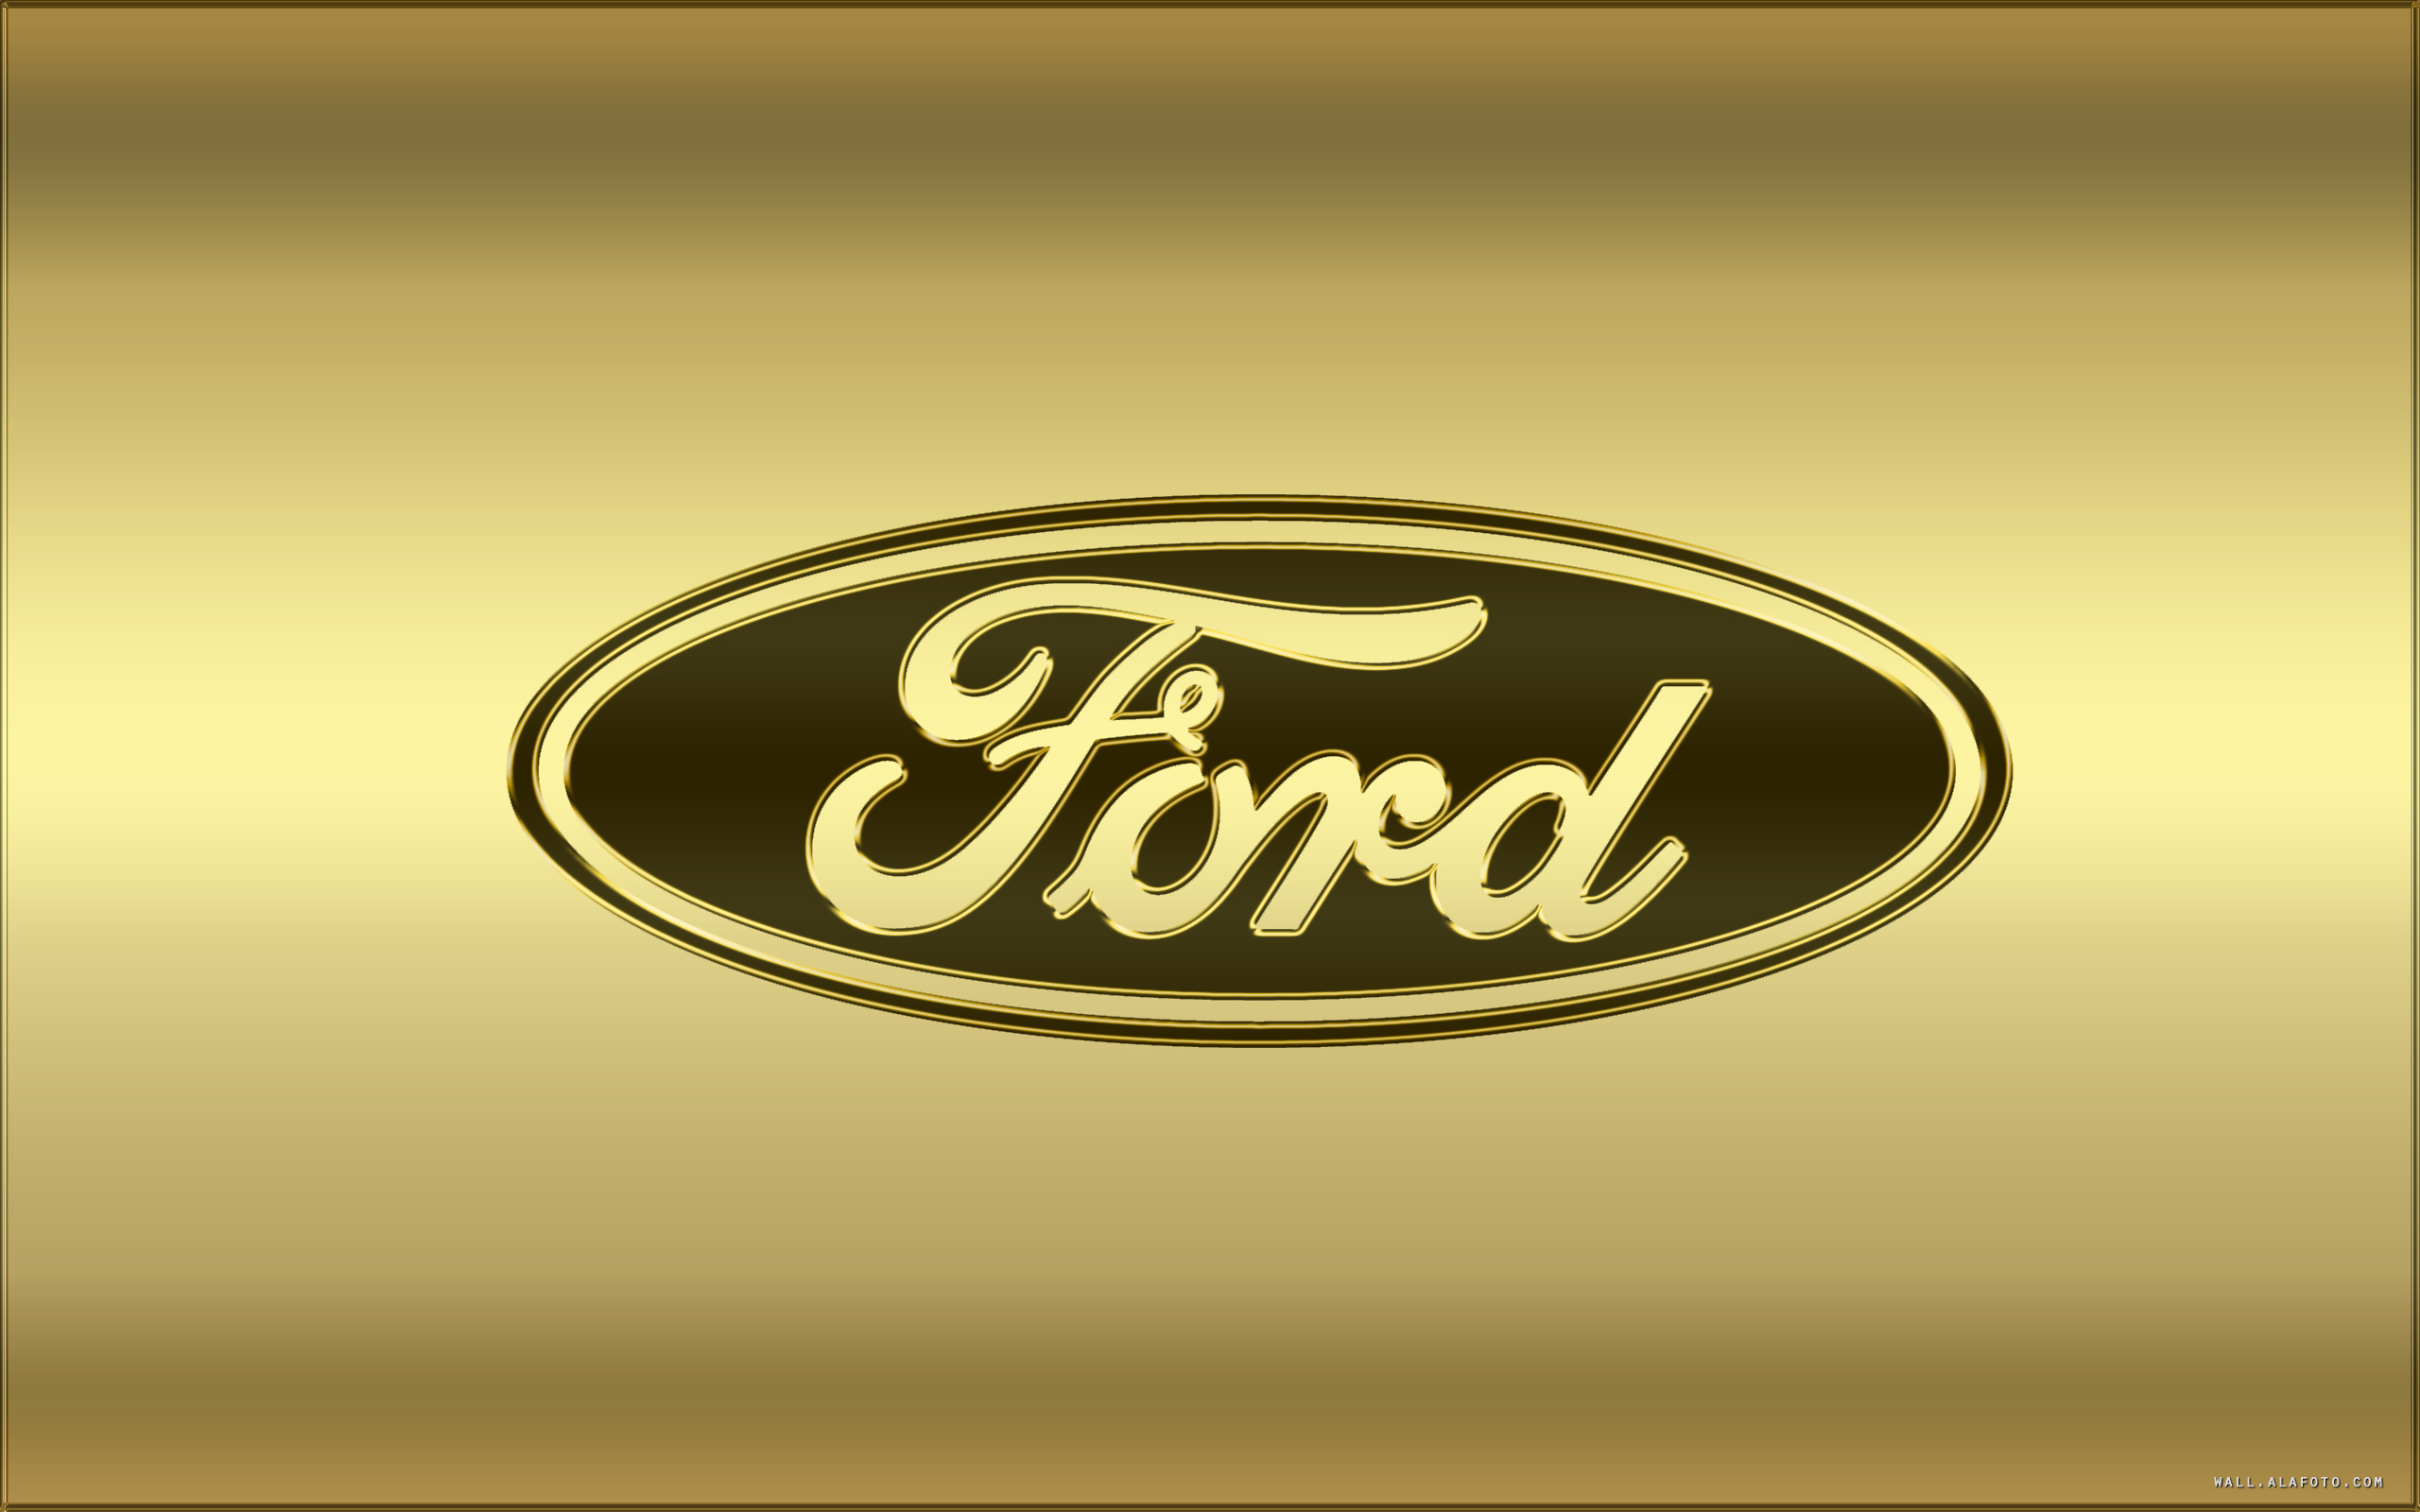 ford logo wallpaper Car Pictures 2560x1600